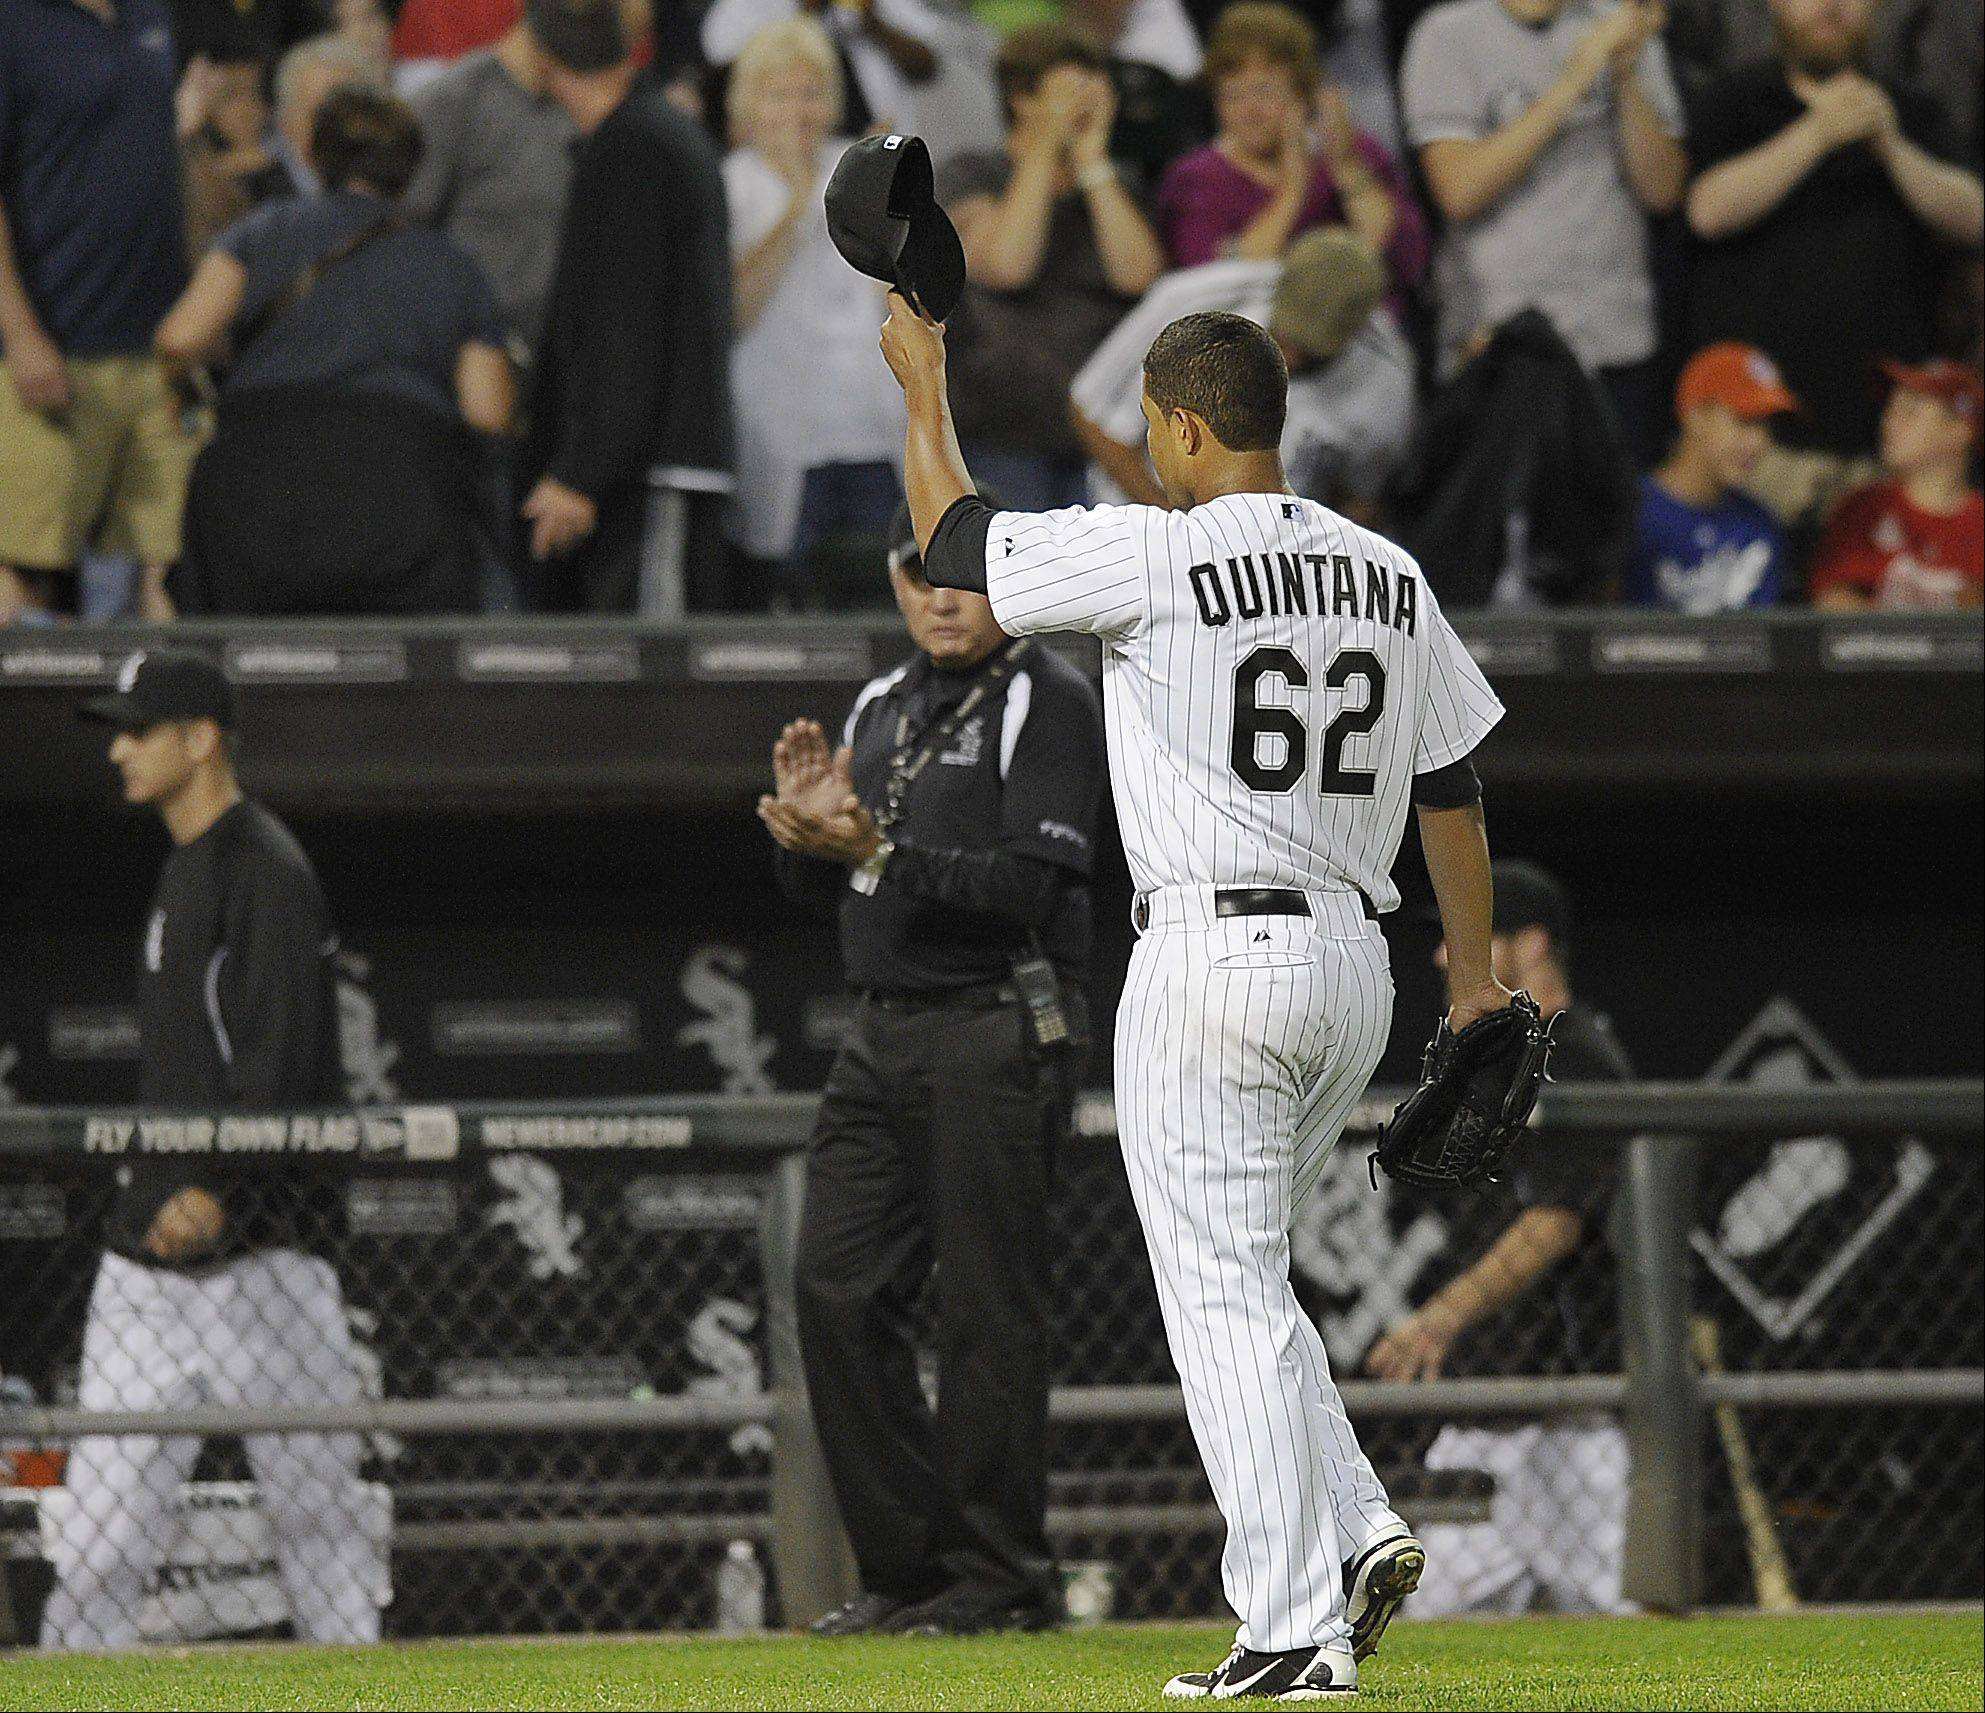 White Sox starter Jose Quintana finally got some run support Monday night and improved his record to 6-3.